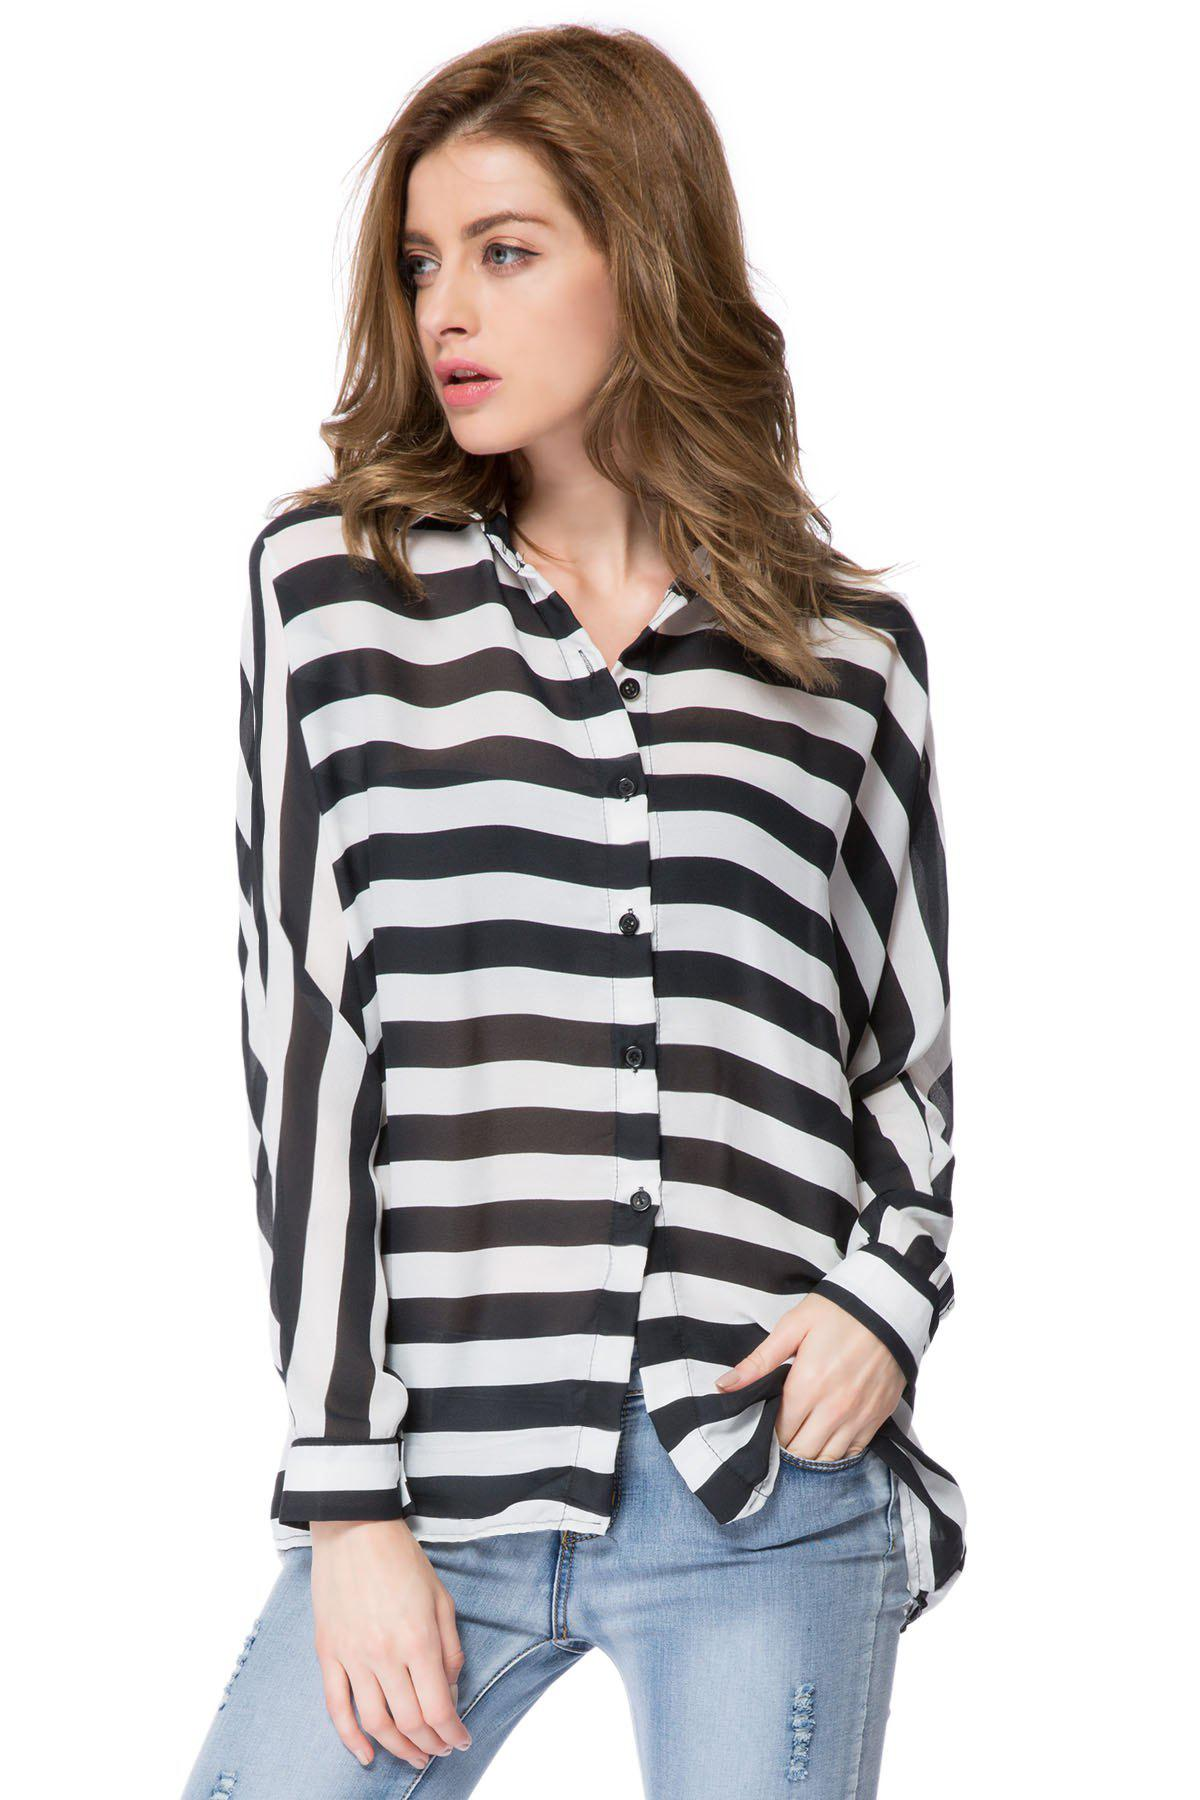 Stylish Shirt Collar Long Batwing Sleeve Striped Chiffon Loose-Fitting Women's Shirt - WHITE/BLACK ONE SIZE(FIT OUR SIZE)